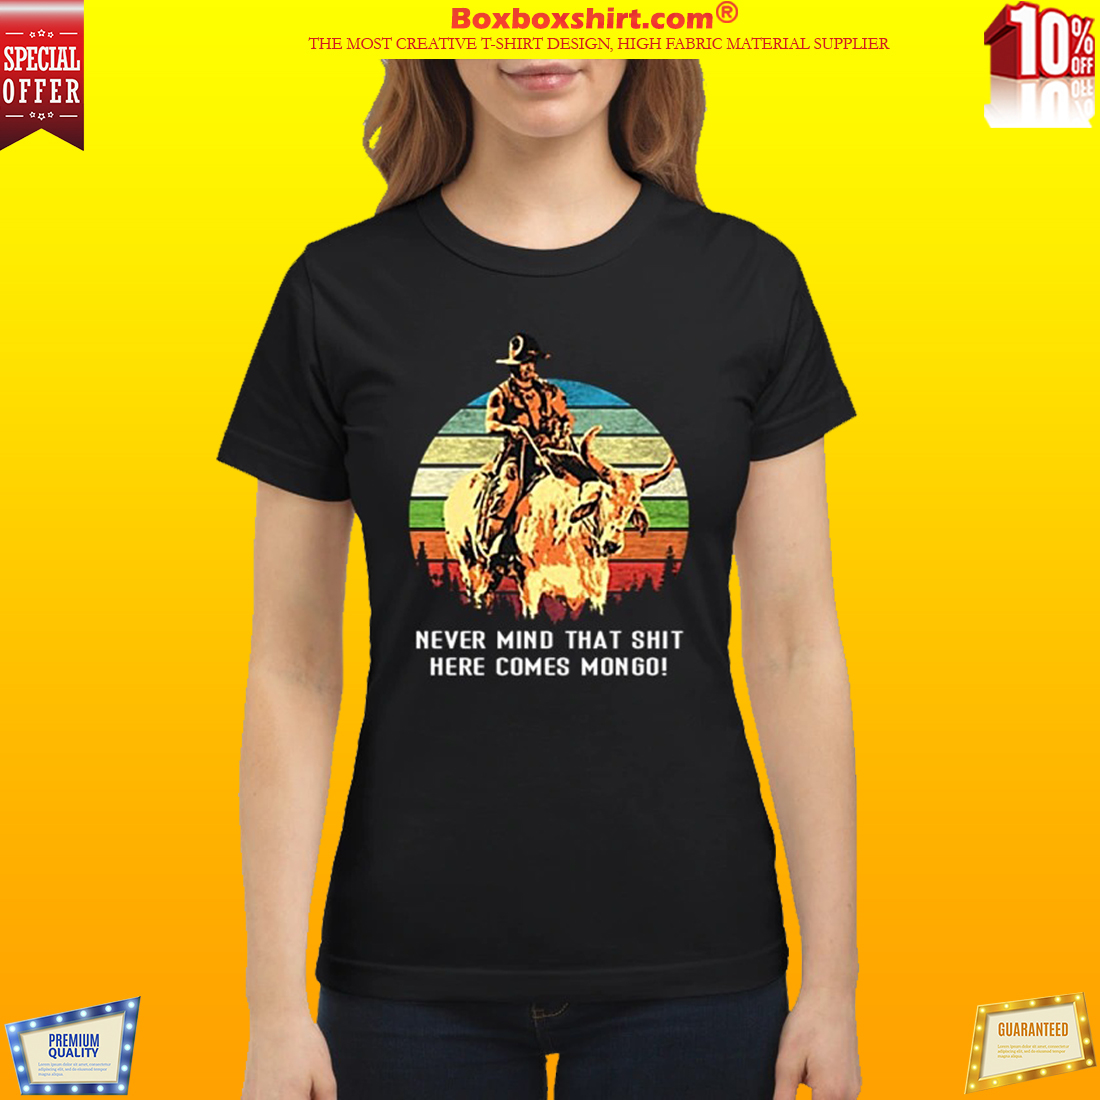 Blazing Saddles Never mind that shit here comes mongo classic shirt